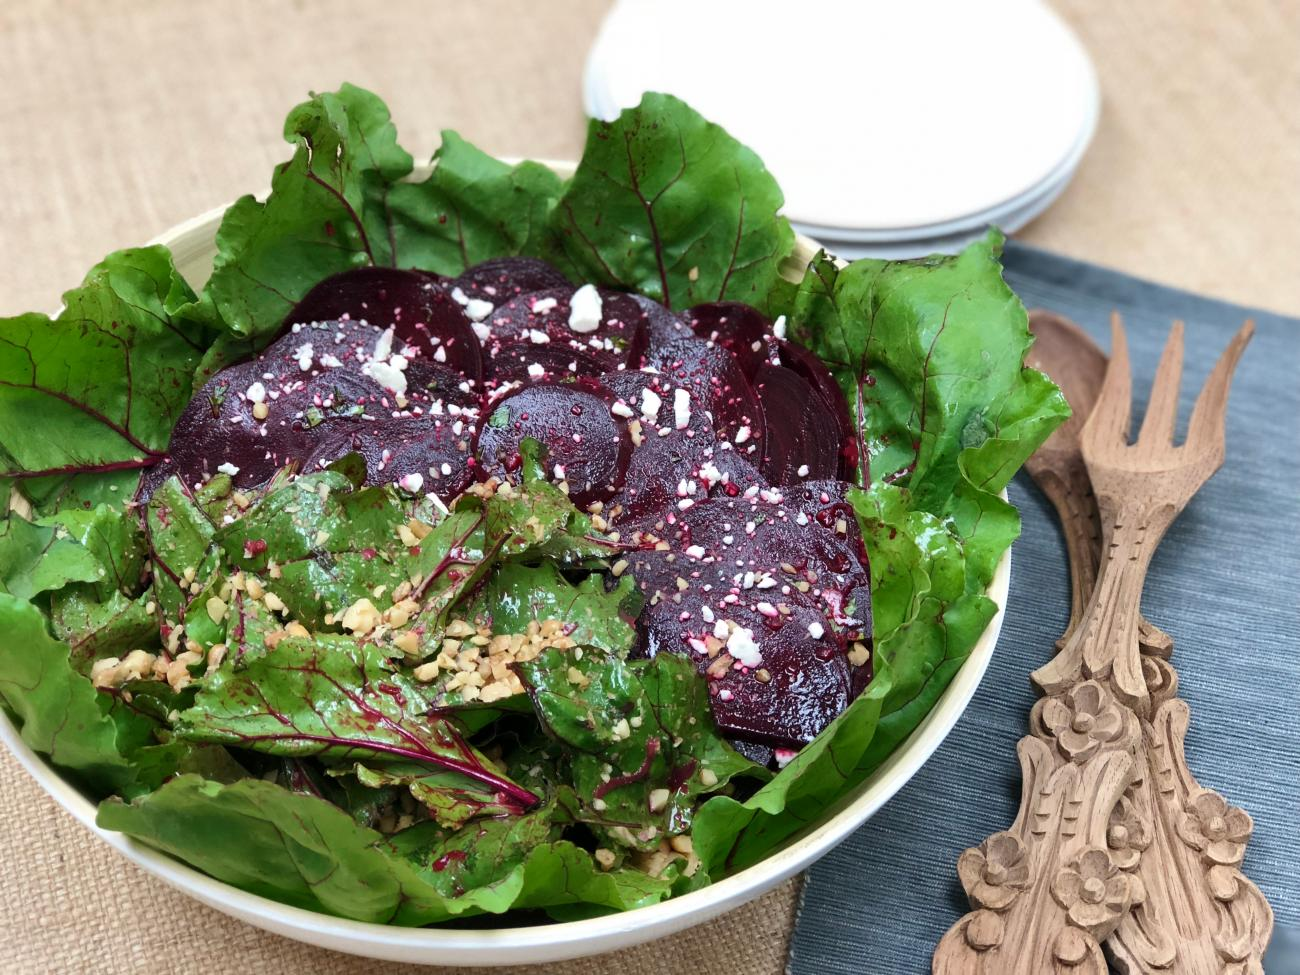 Recipe for Beet Green Salad With Beets